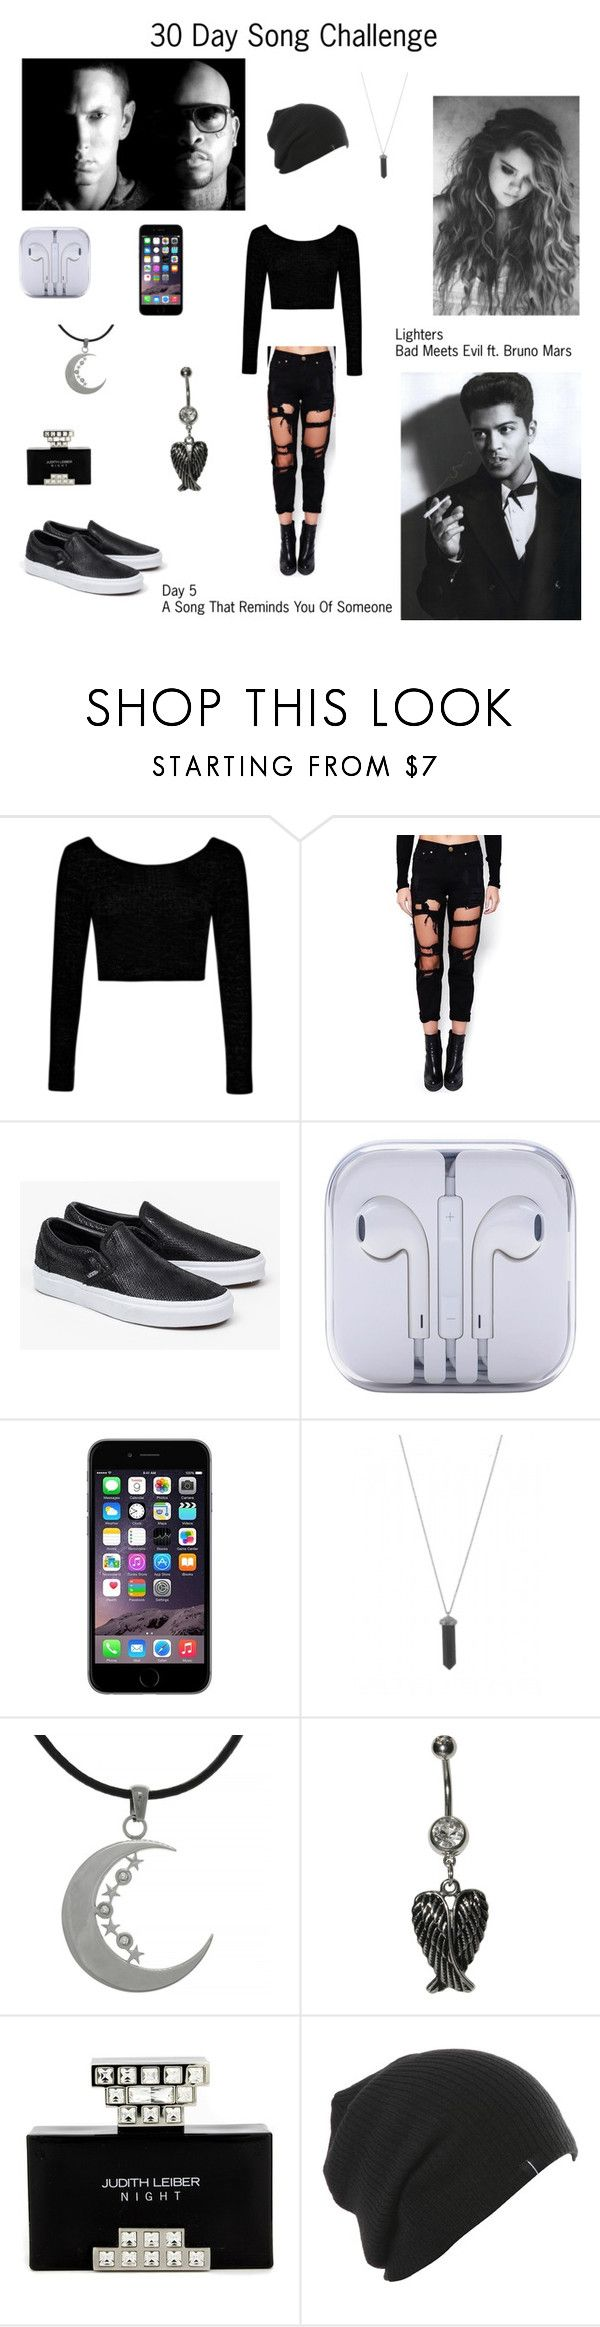 """""""Lighters by Bad Meets Evil ft. Bruno Mars - Day 5"""" by foreverslytherin ❤ liked on Polyvore featuring Rhythm., Boohoo, Vans, Karen Kane, Carolina Glamour Collection and Judith Leiber"""